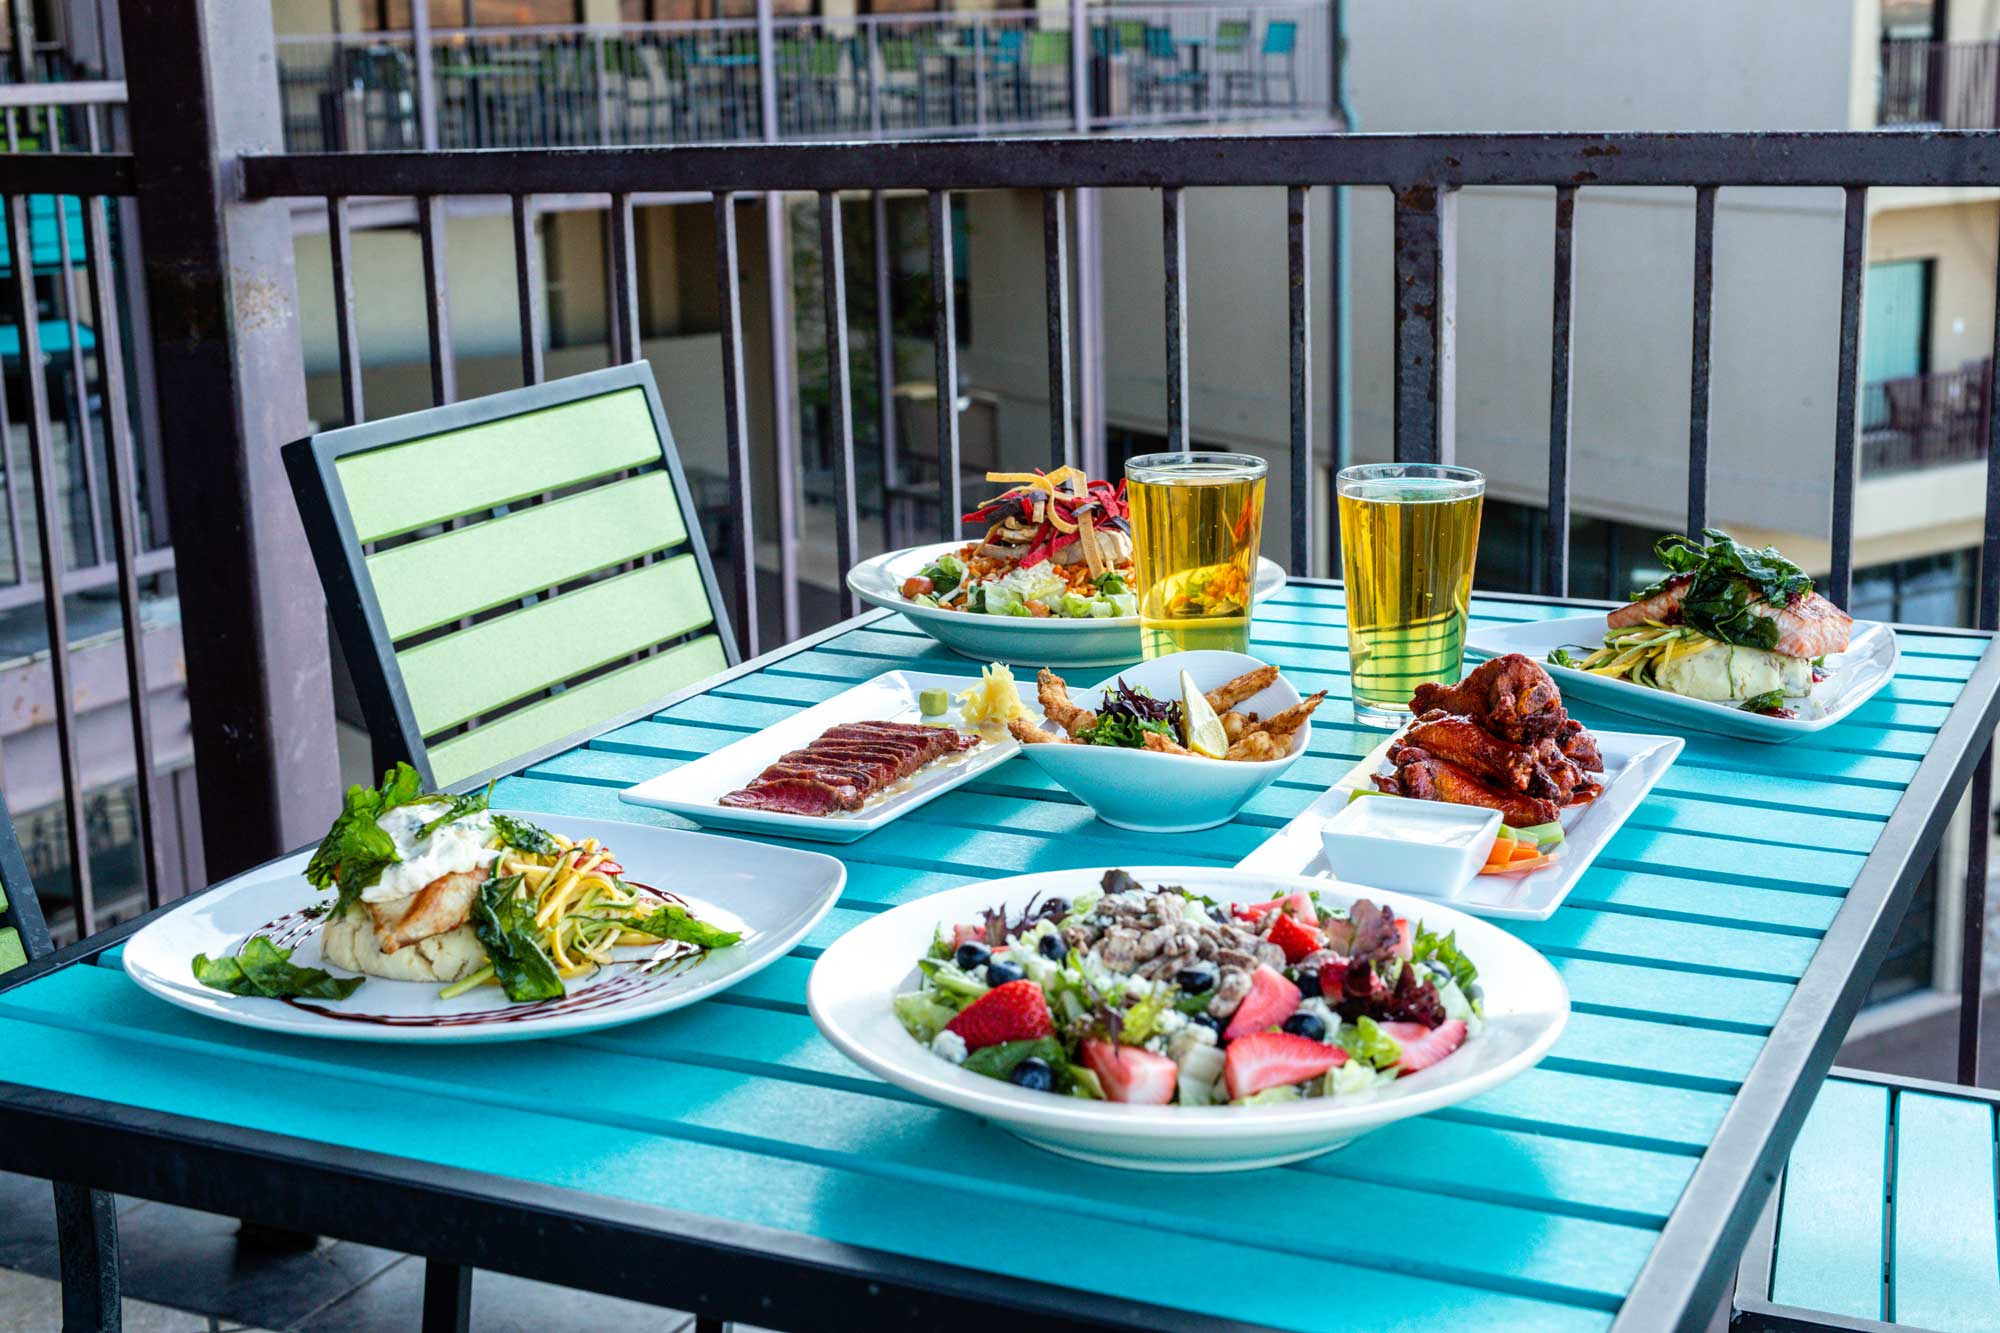 entrees and appetizers on a blue table with pints of beer - outdoor dining at camden on the lake